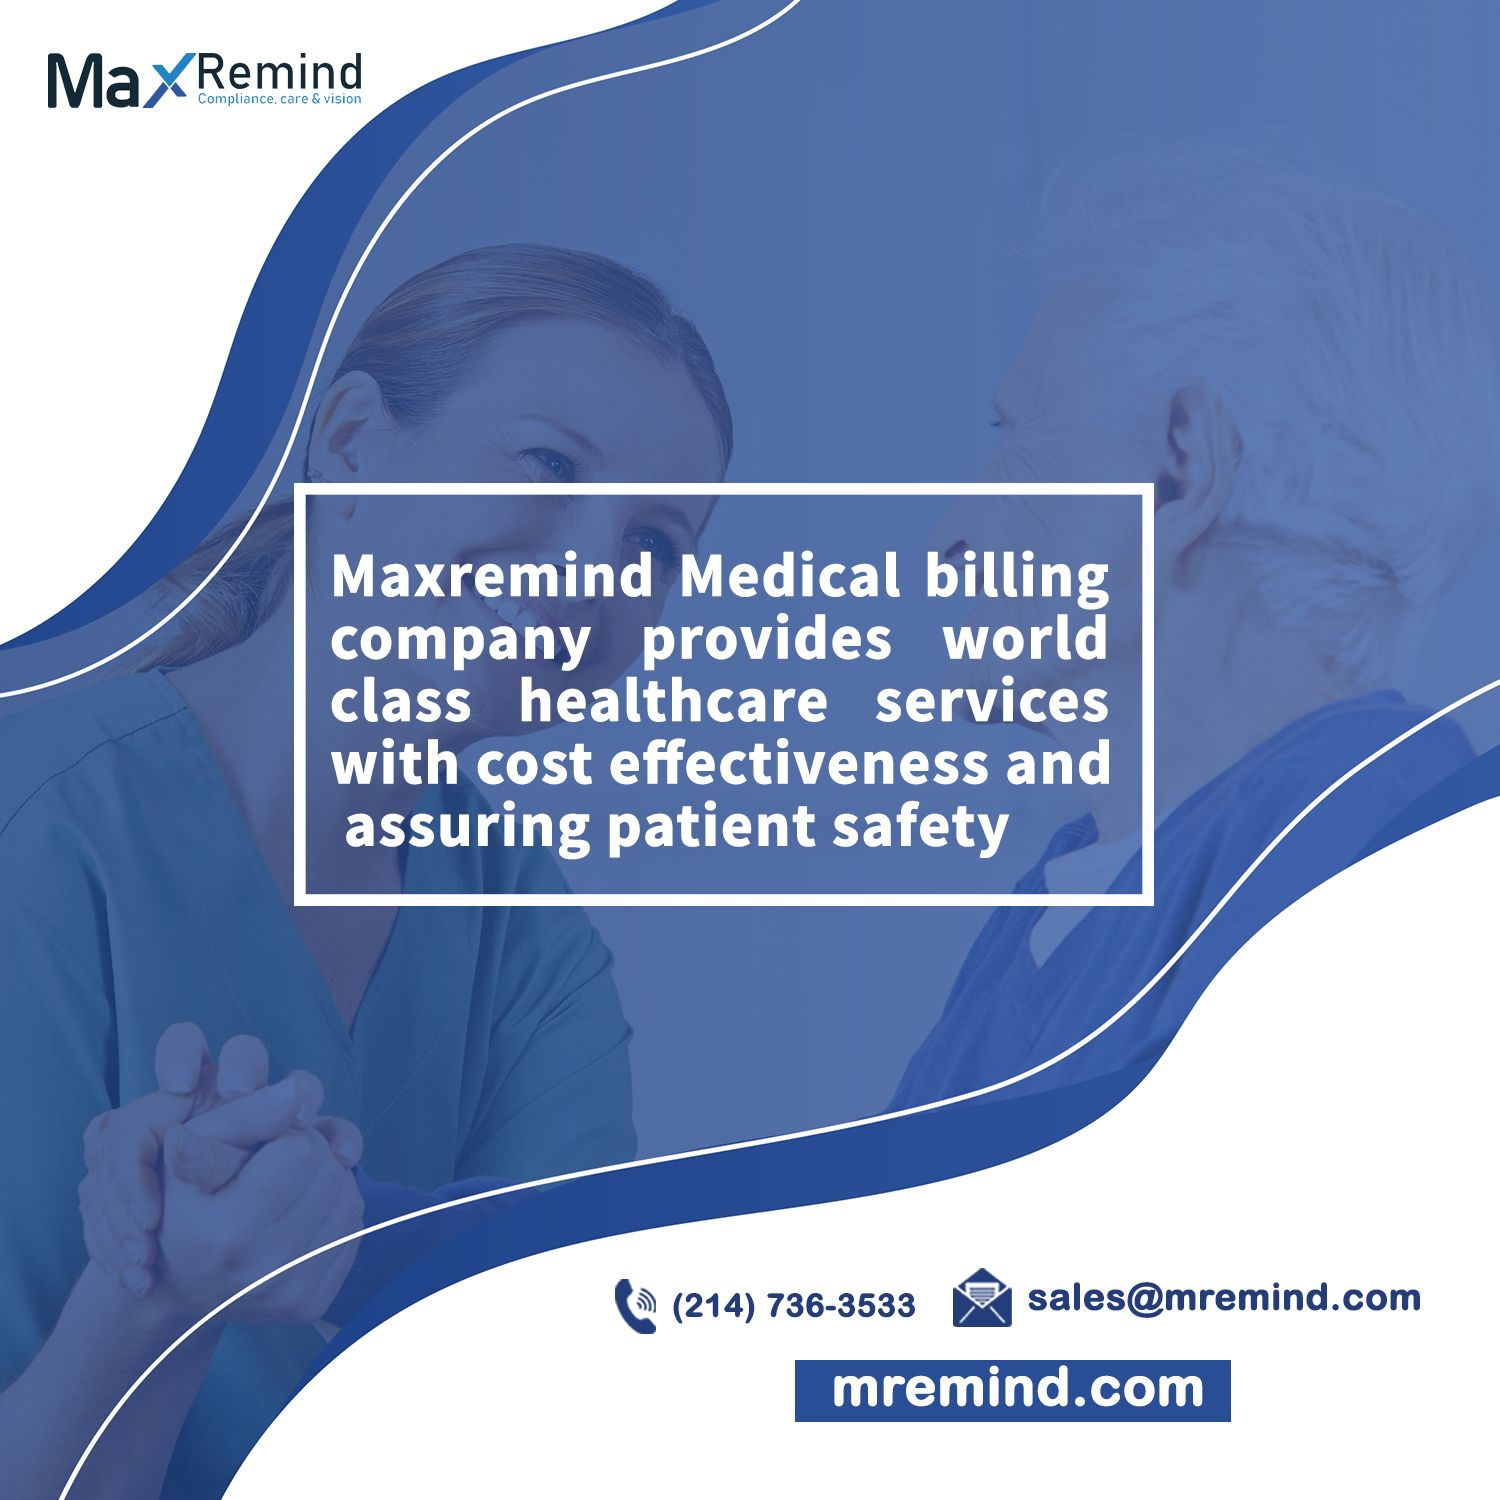 Submit Your Claims Online With Maxremind For The Quickest Claim